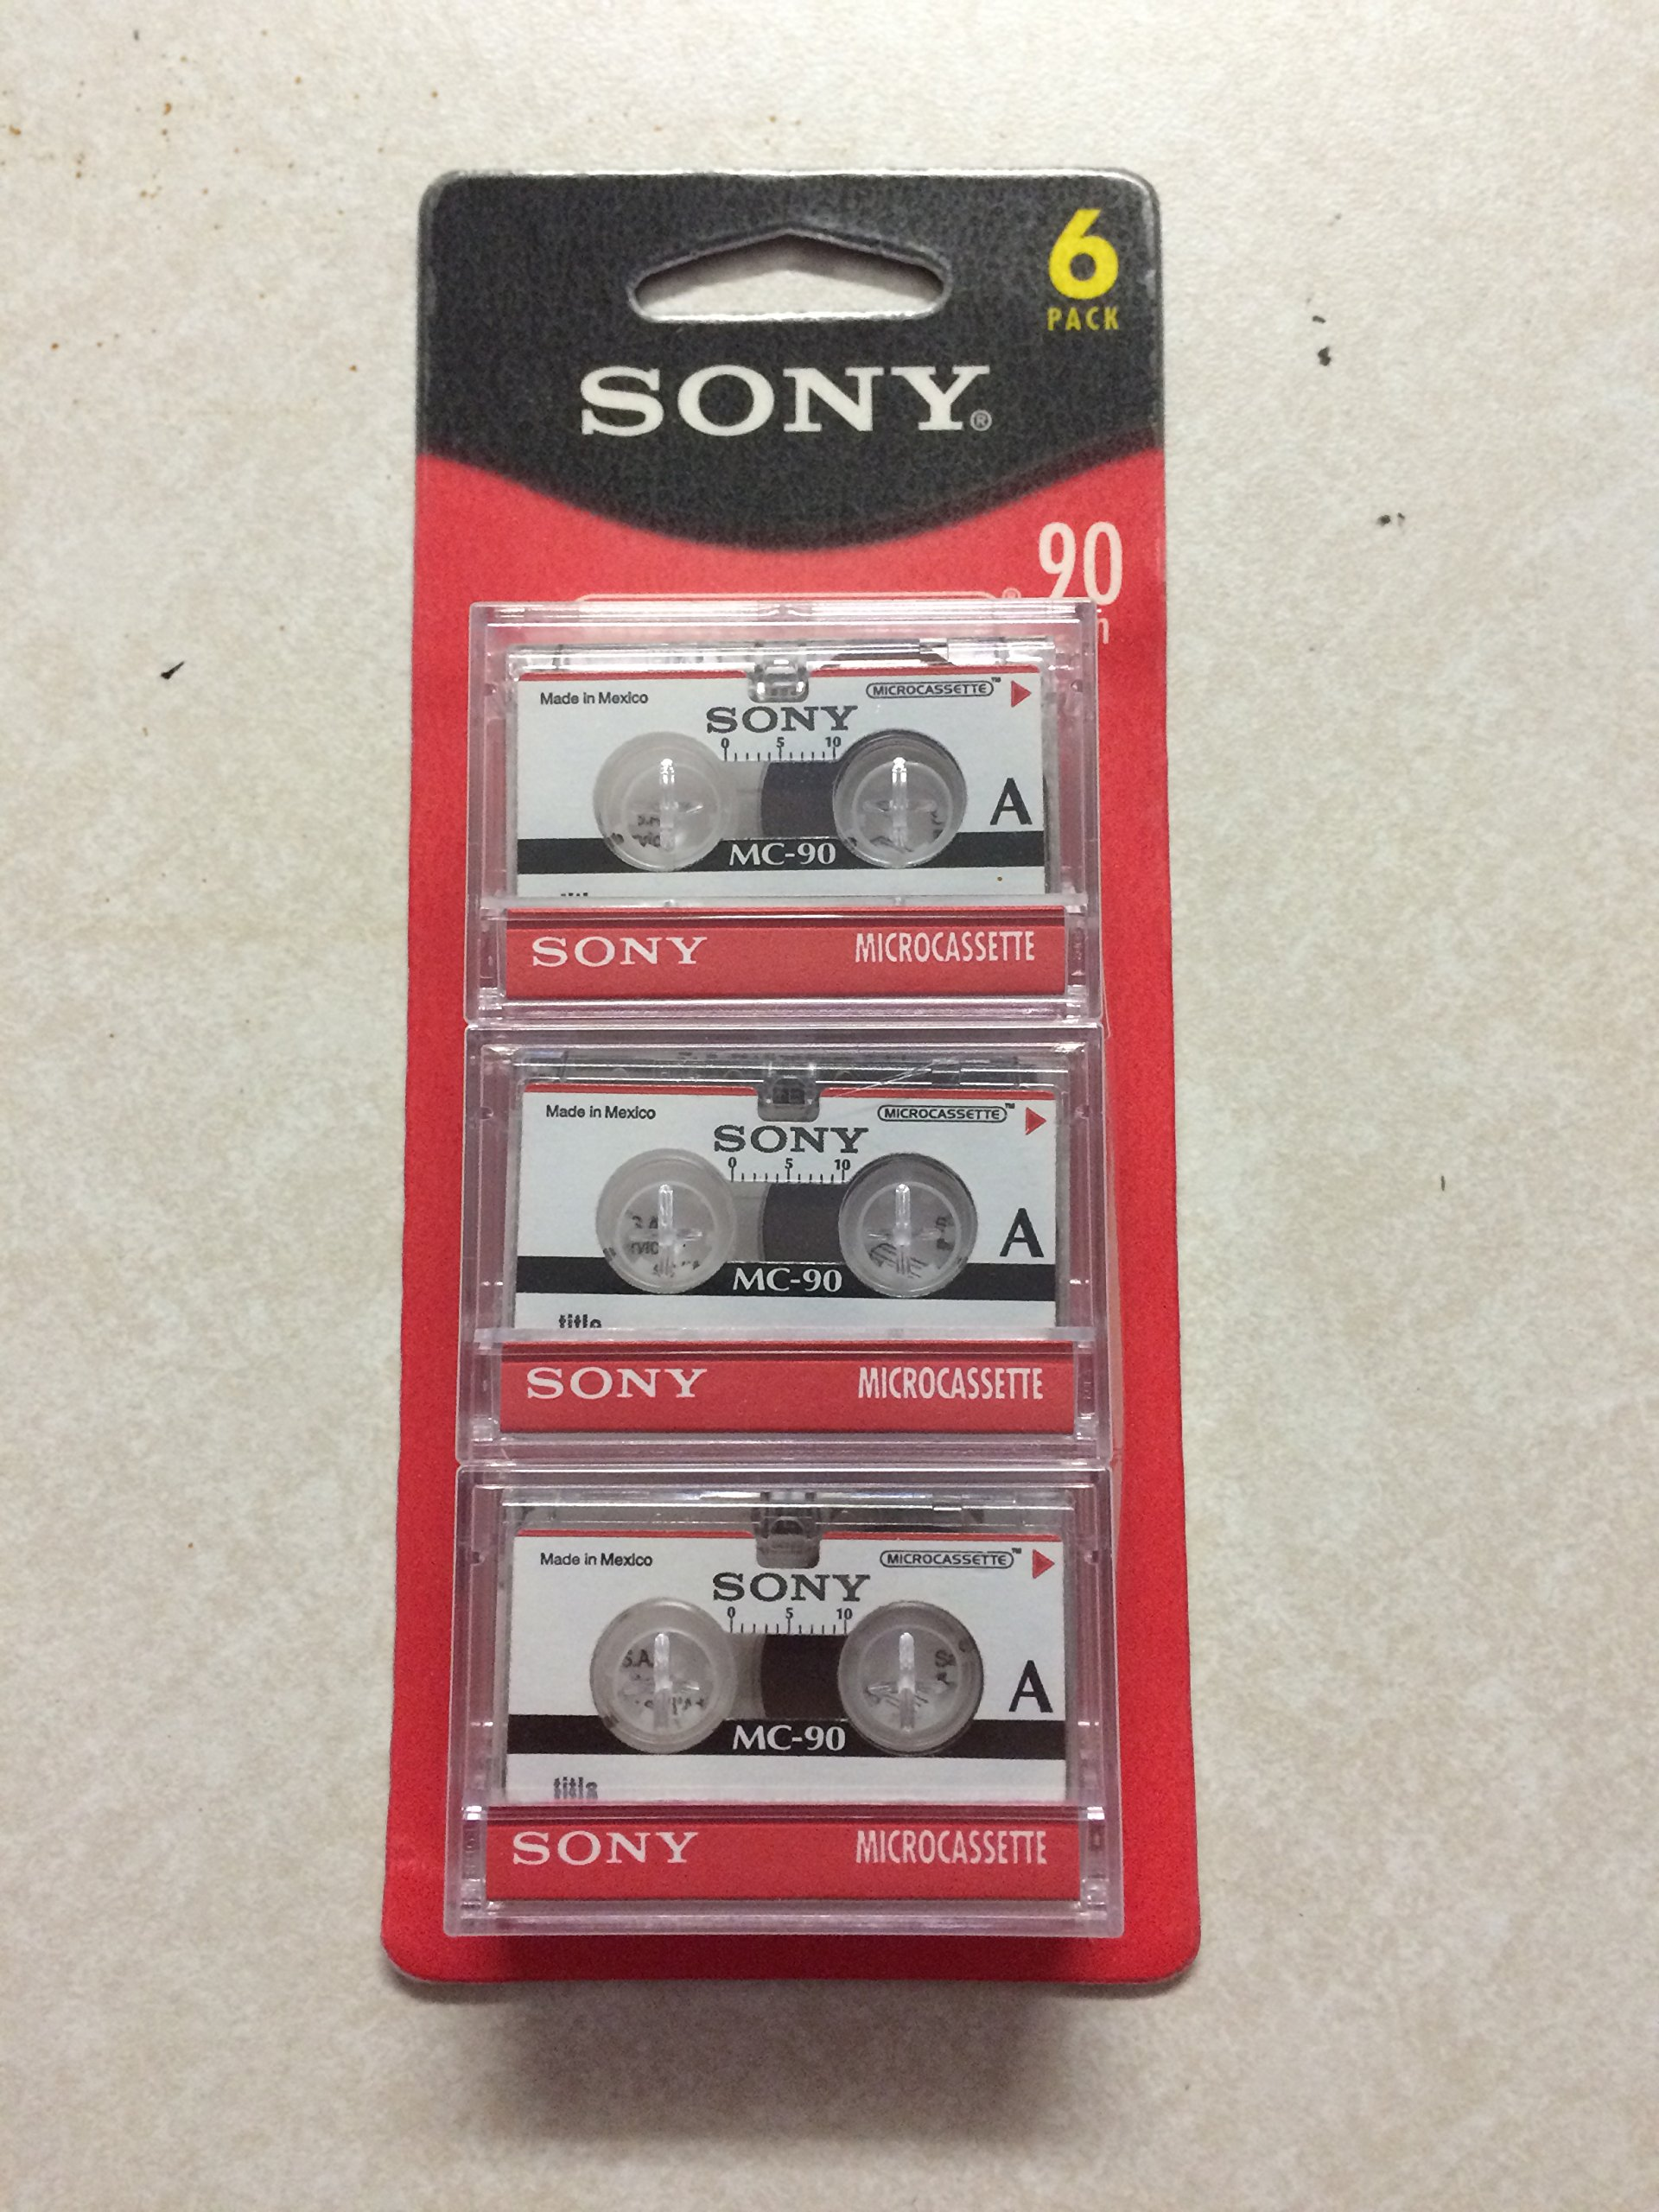 SONY mc90 Microcassette Audio Tapes 6 pack